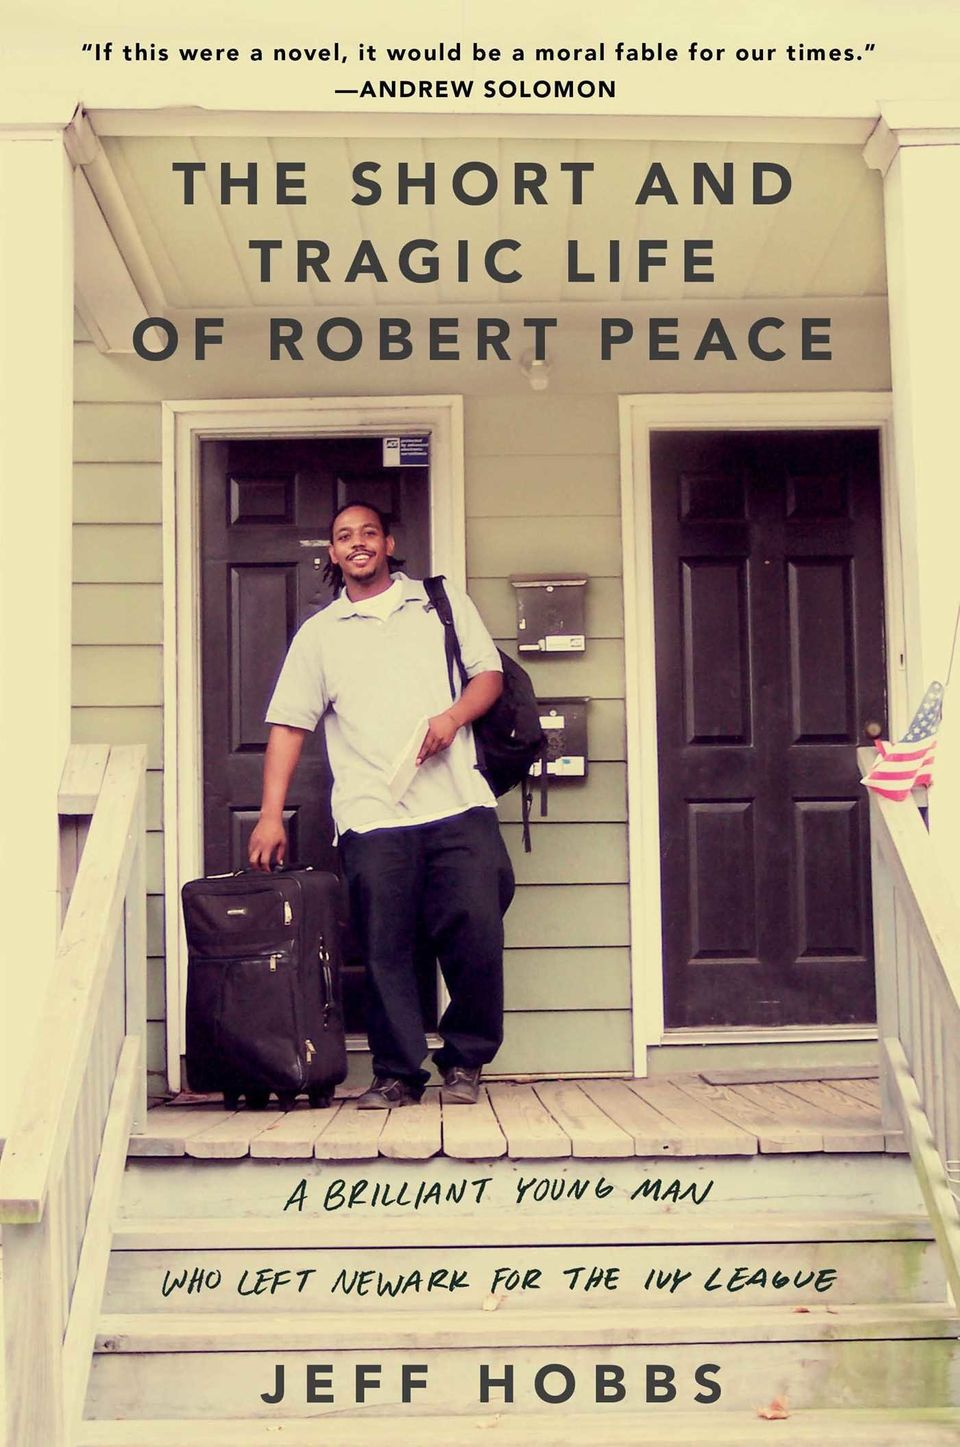 This moving biography recounts the life of Robert Peace, a young man who escaped the streets of Newark, New Jersey, to attend